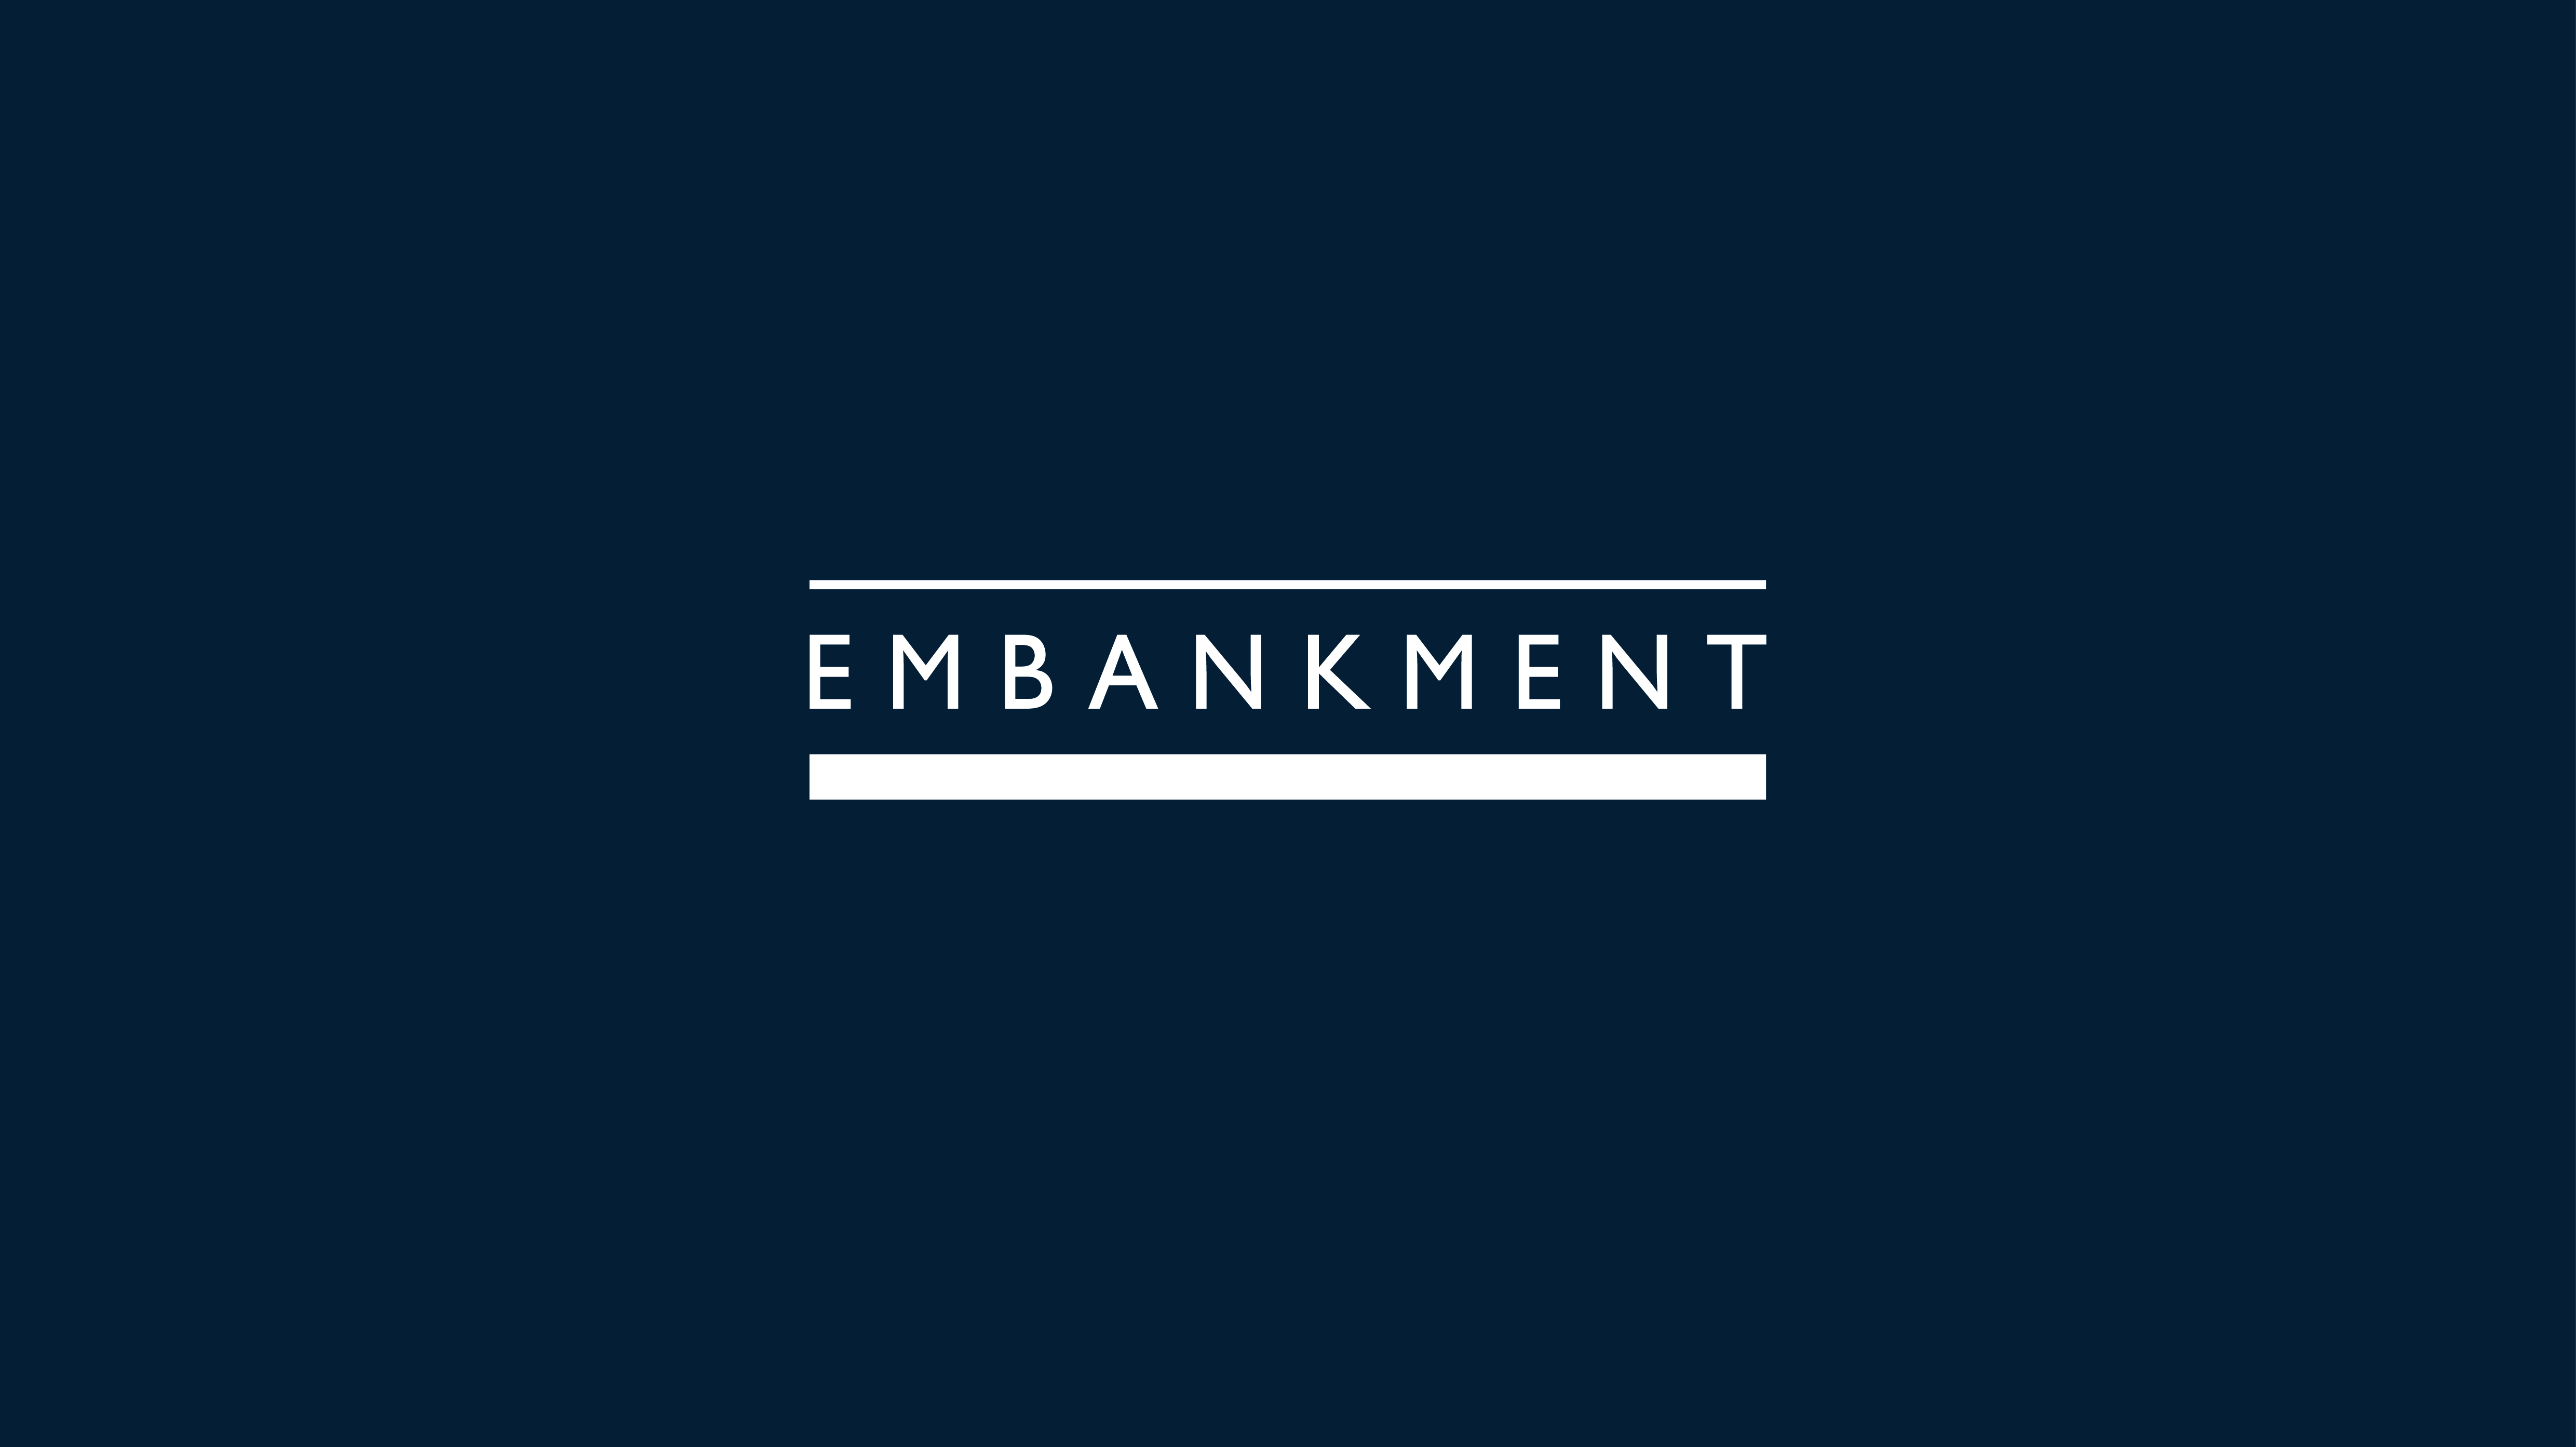 Embankment_-_Logo_-_Draft_11-08-14